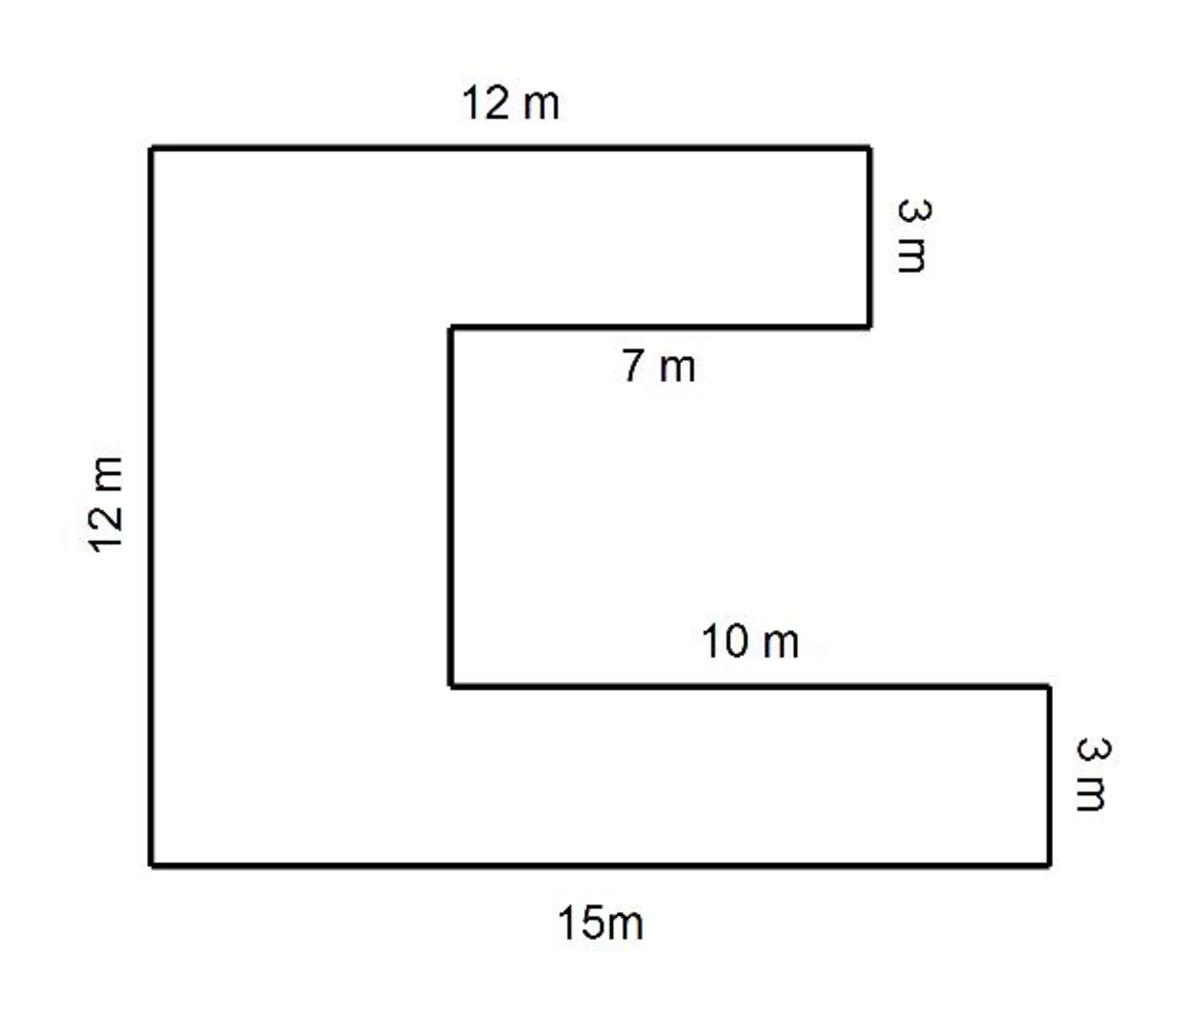 Compound C Shapes How To Calculate The Perimeter And Area